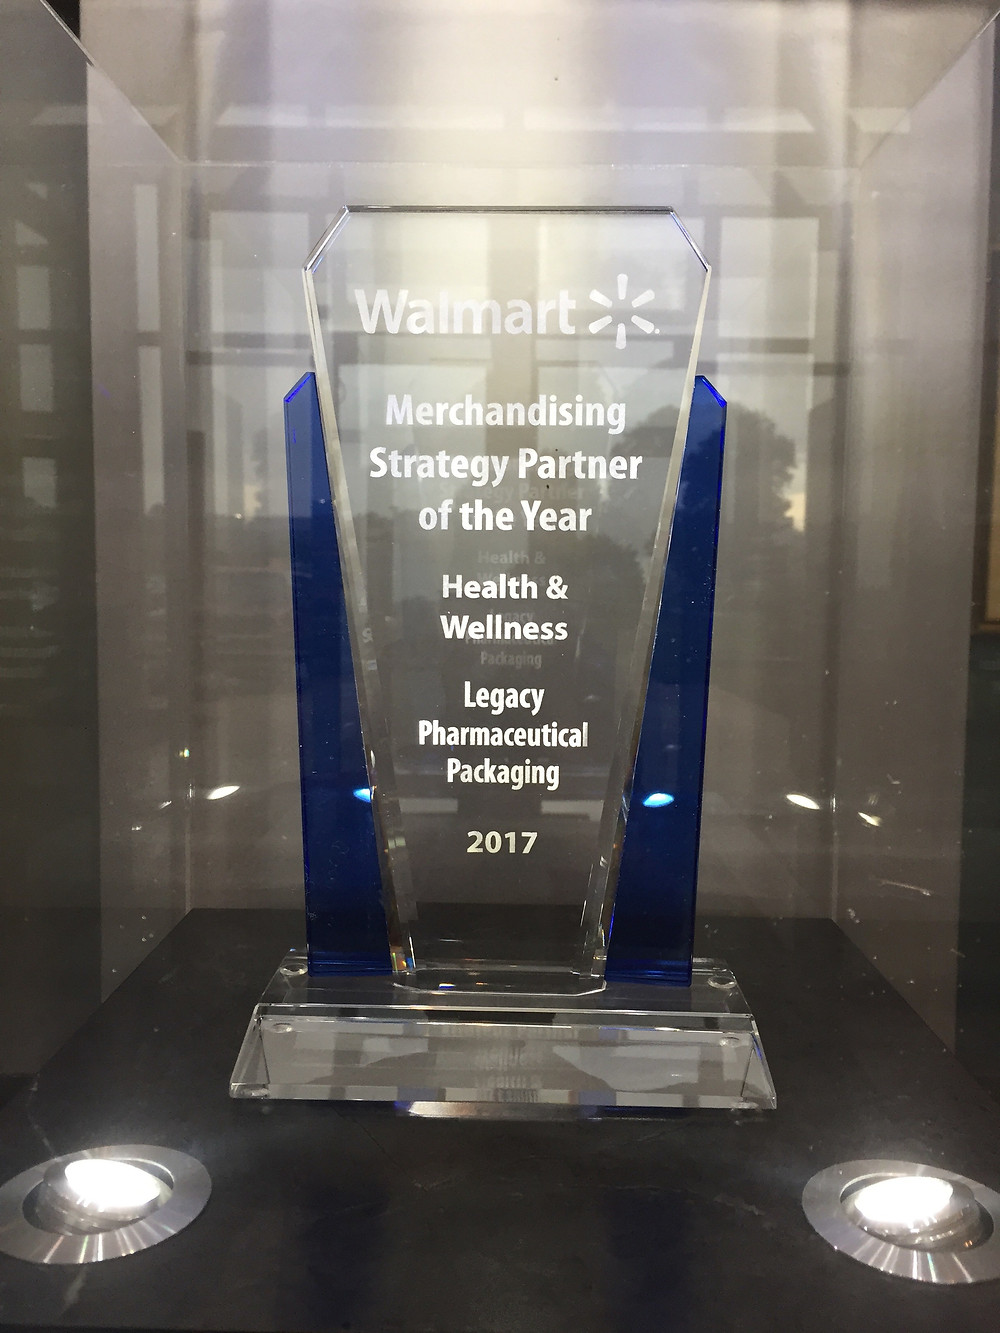 Legacy Awarded Walmart's Merchandising Strategic Parner of the Year in Health & Wellness for 2017